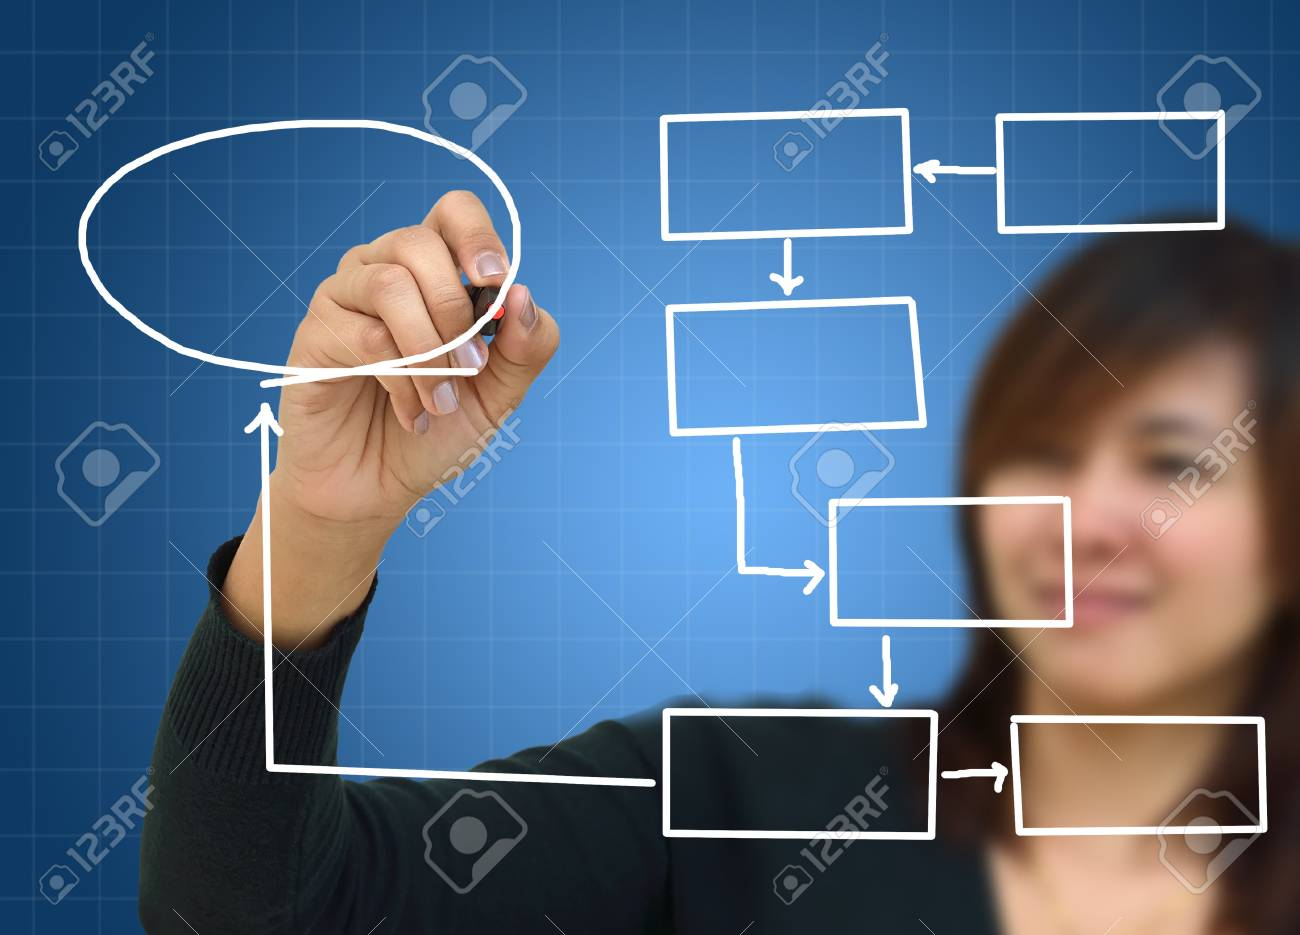 Business woman a hand drawing in a whiteboard Stock Photo - 11901351